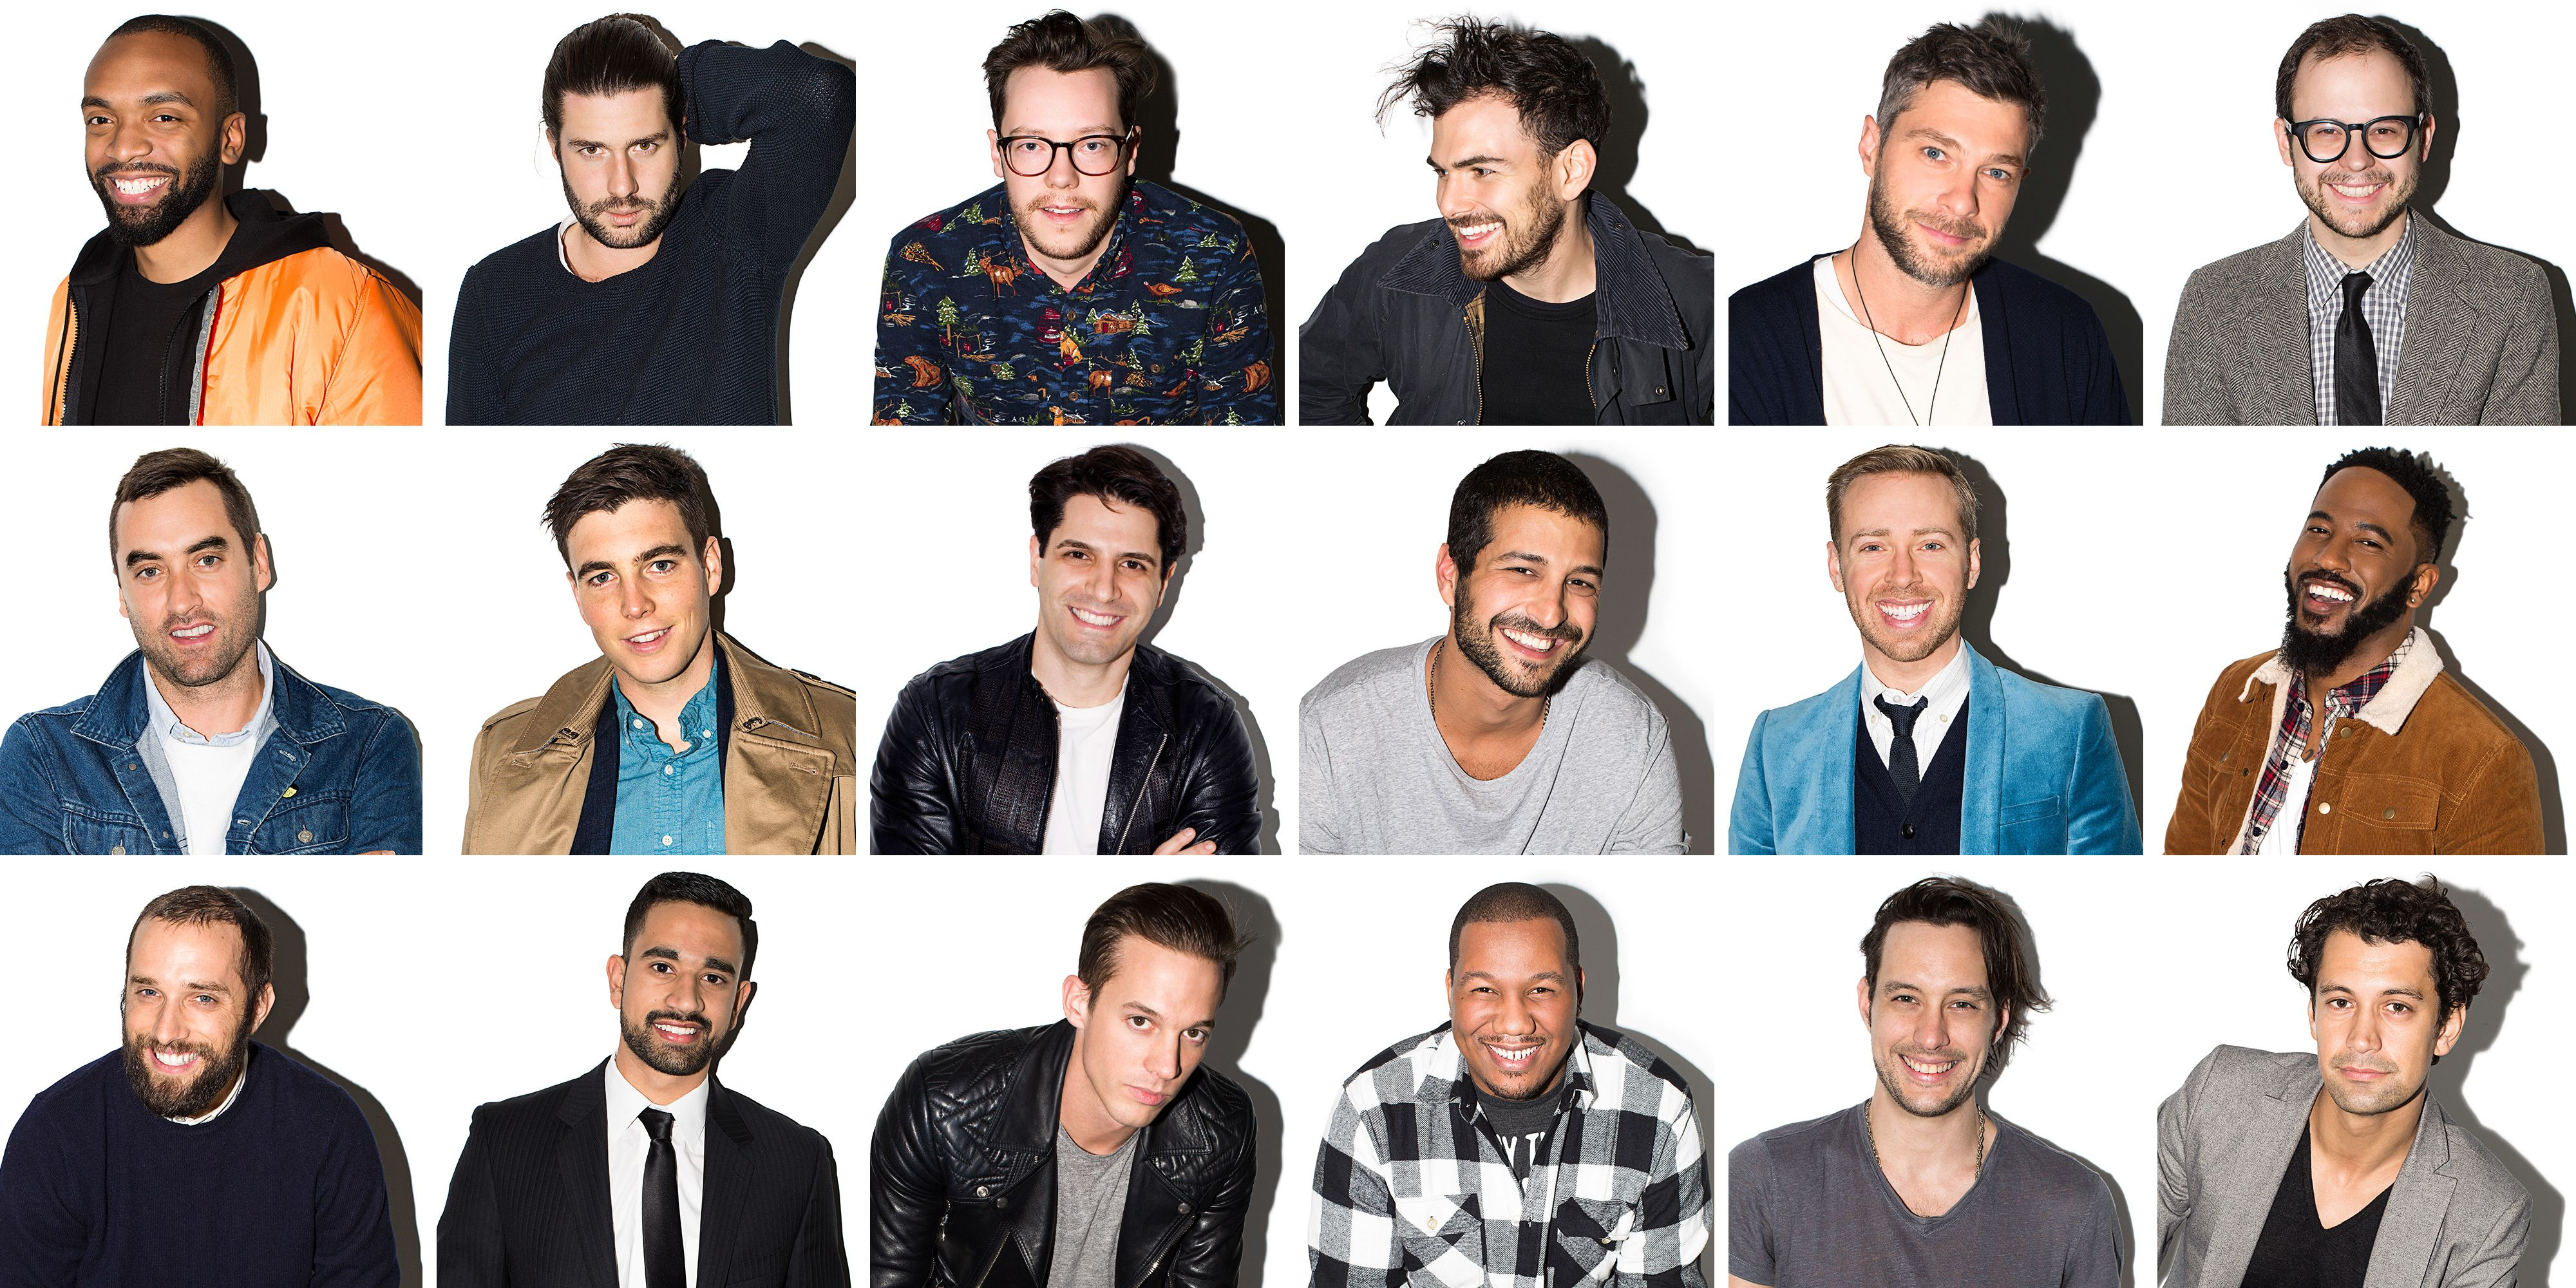 40 most eligible bachelors over Hollywood's 40